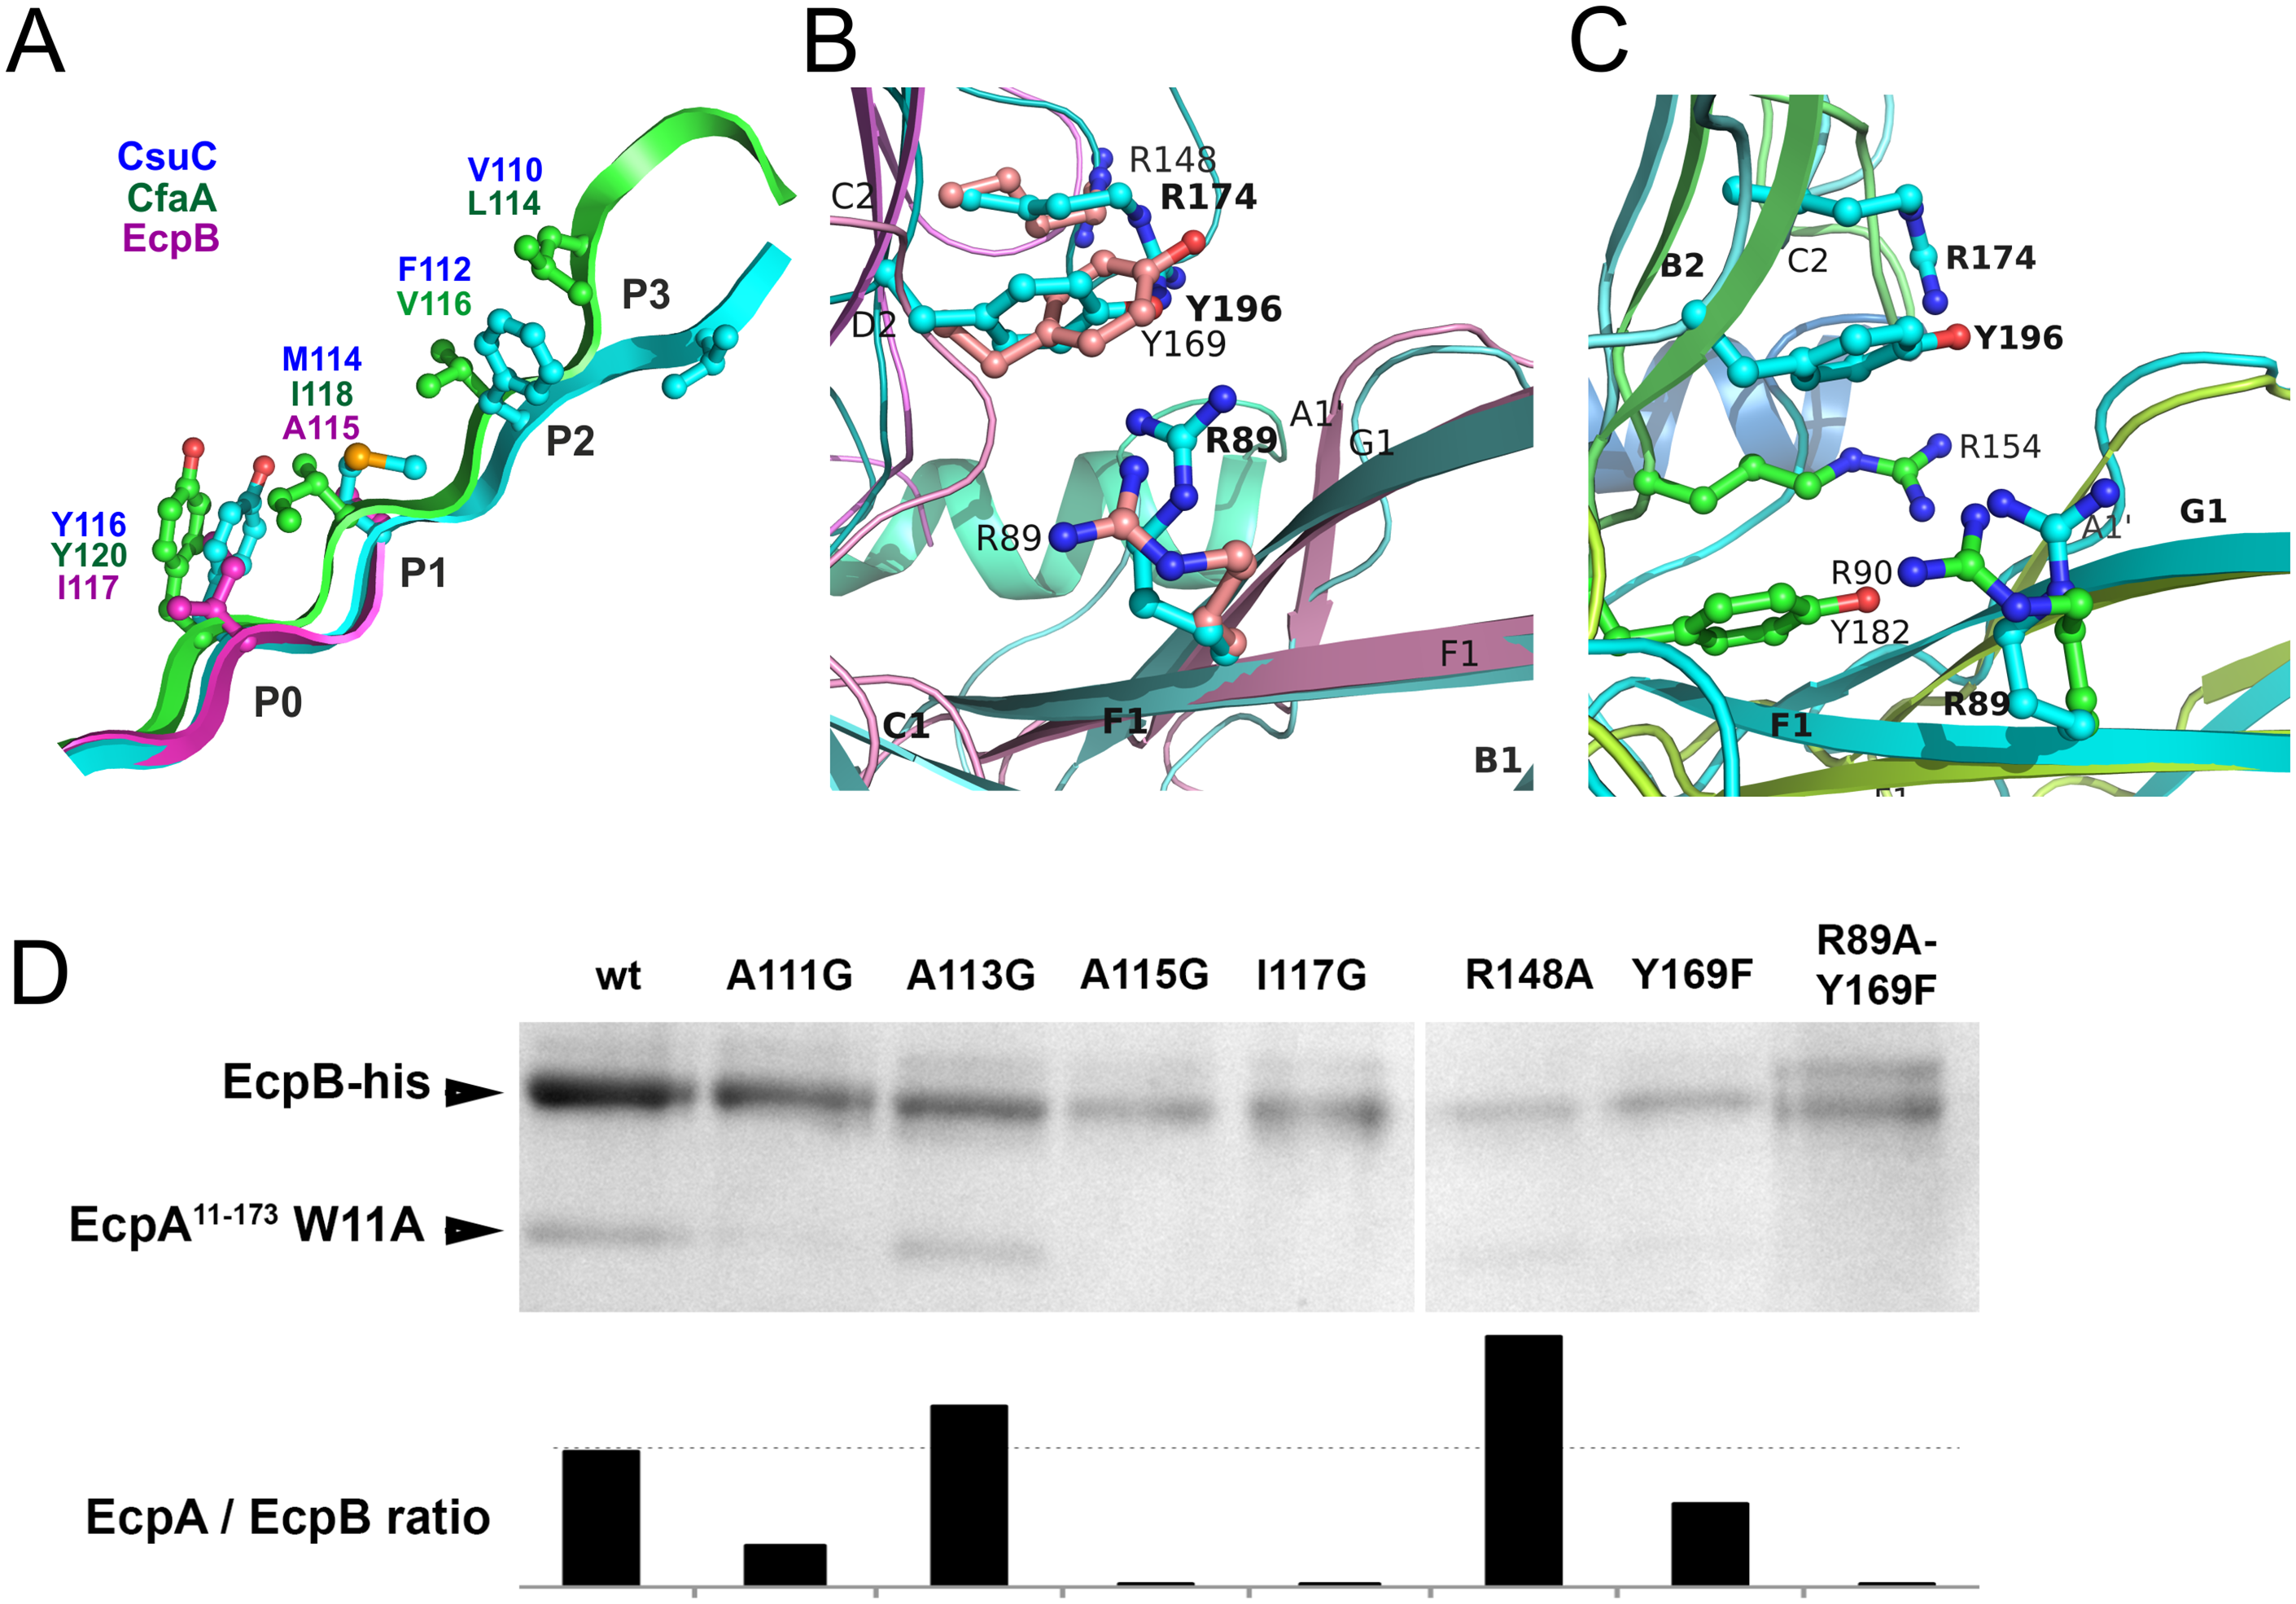 Both archaic and alternative chaperones bind to subunits by using register-shifted donor strand complementation and two-domain carboxylate anchor.